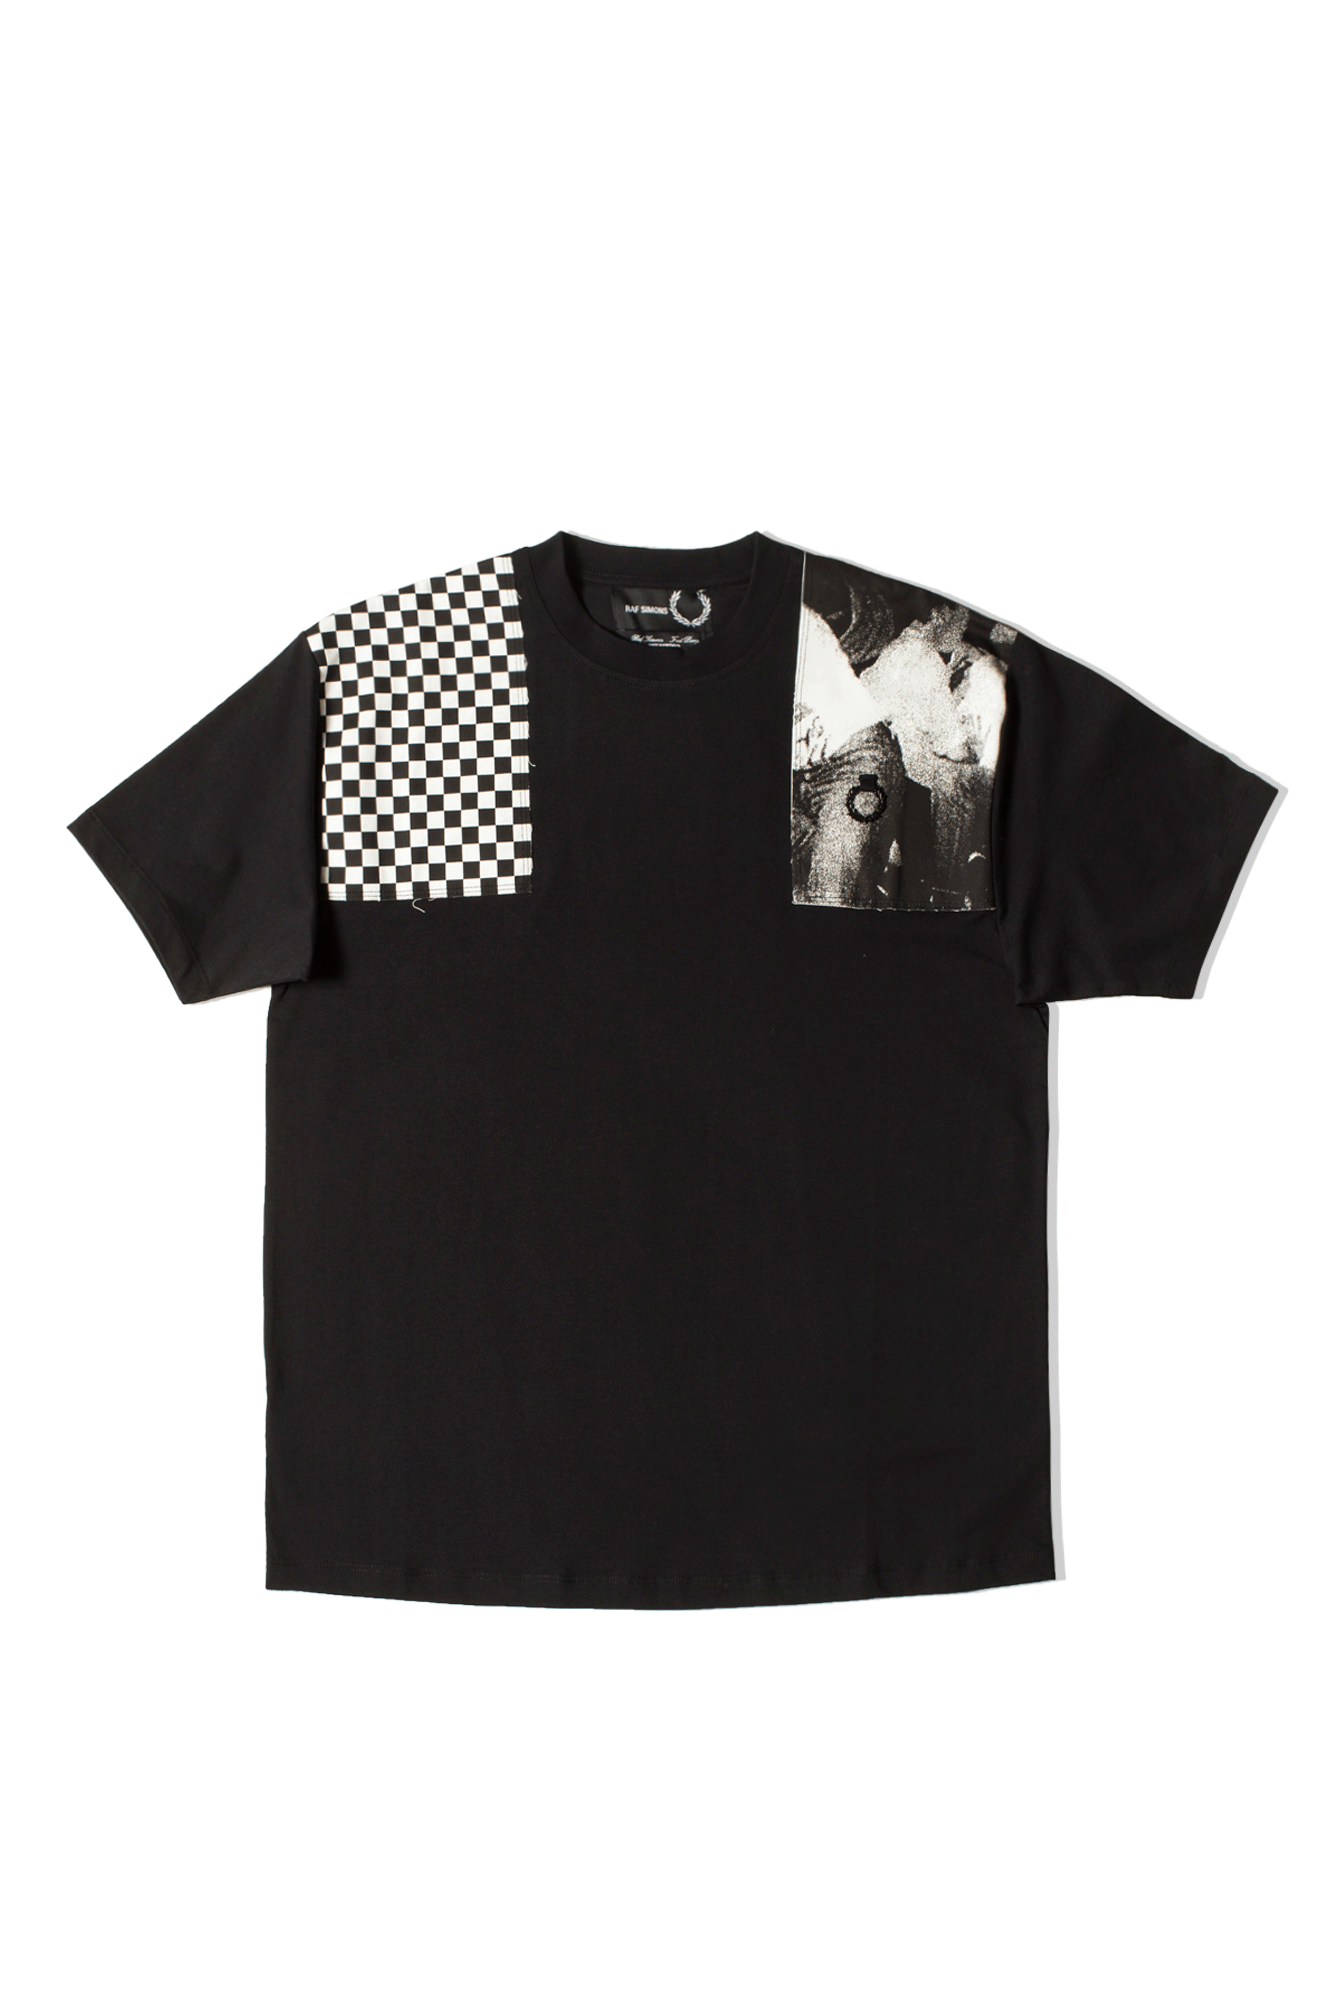 Oversized Printed Patch T-Shirt x Raf Simons